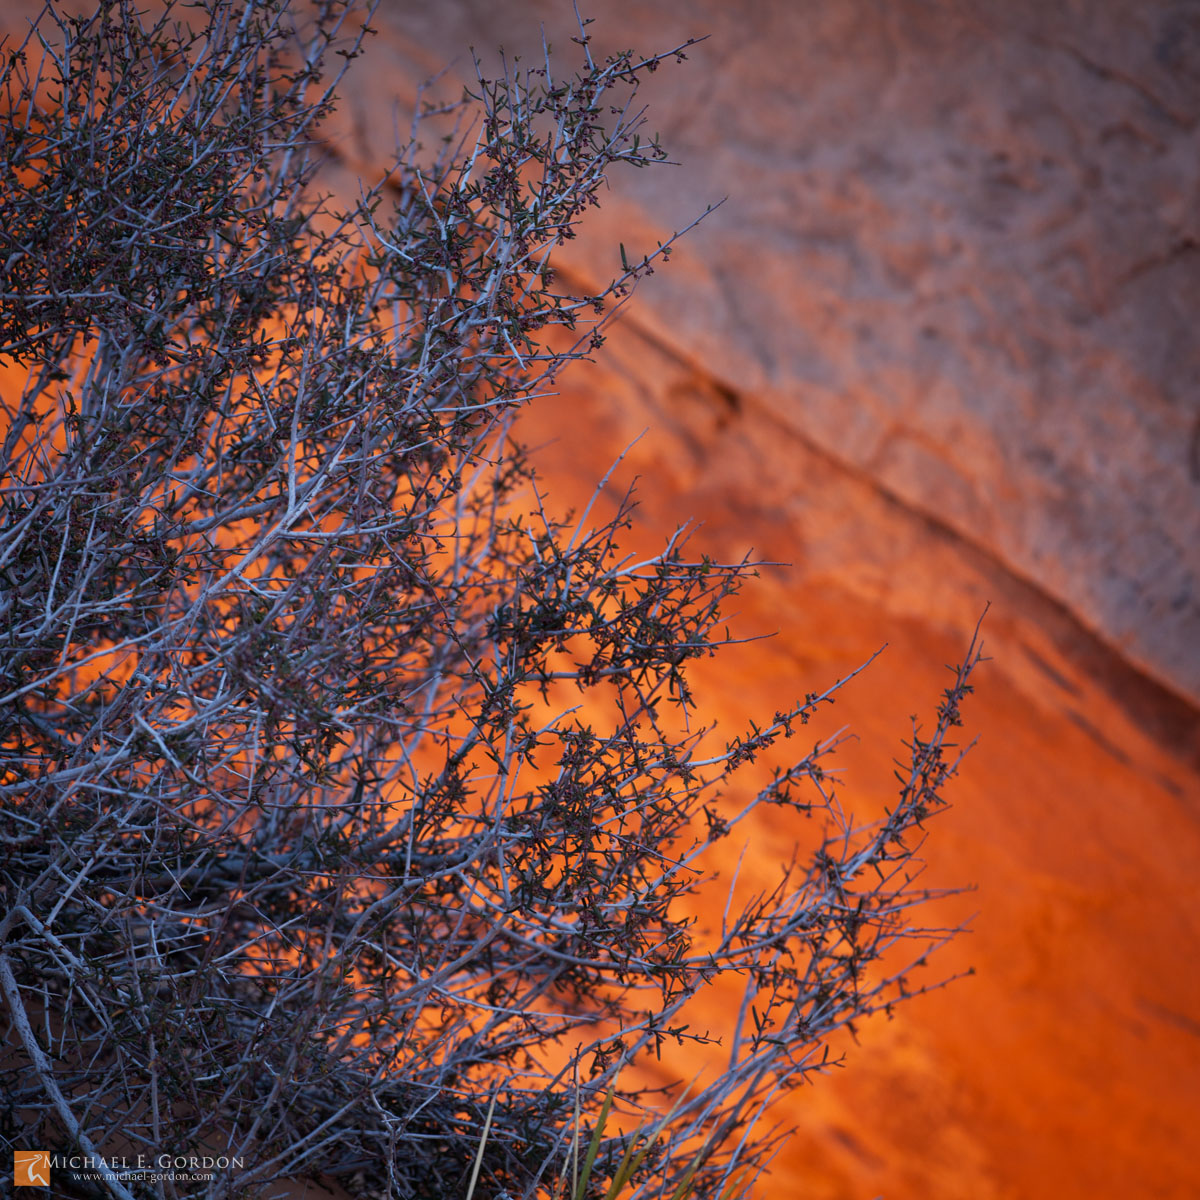 photo,picture,color,blackbrush,Coleogyne ramosissima,glowing,glow,orange,red,sandstone,Mesa Arch,backlight,backlit,sunrise,Island in the Sky,Canyonlands National Park,Utah, photo